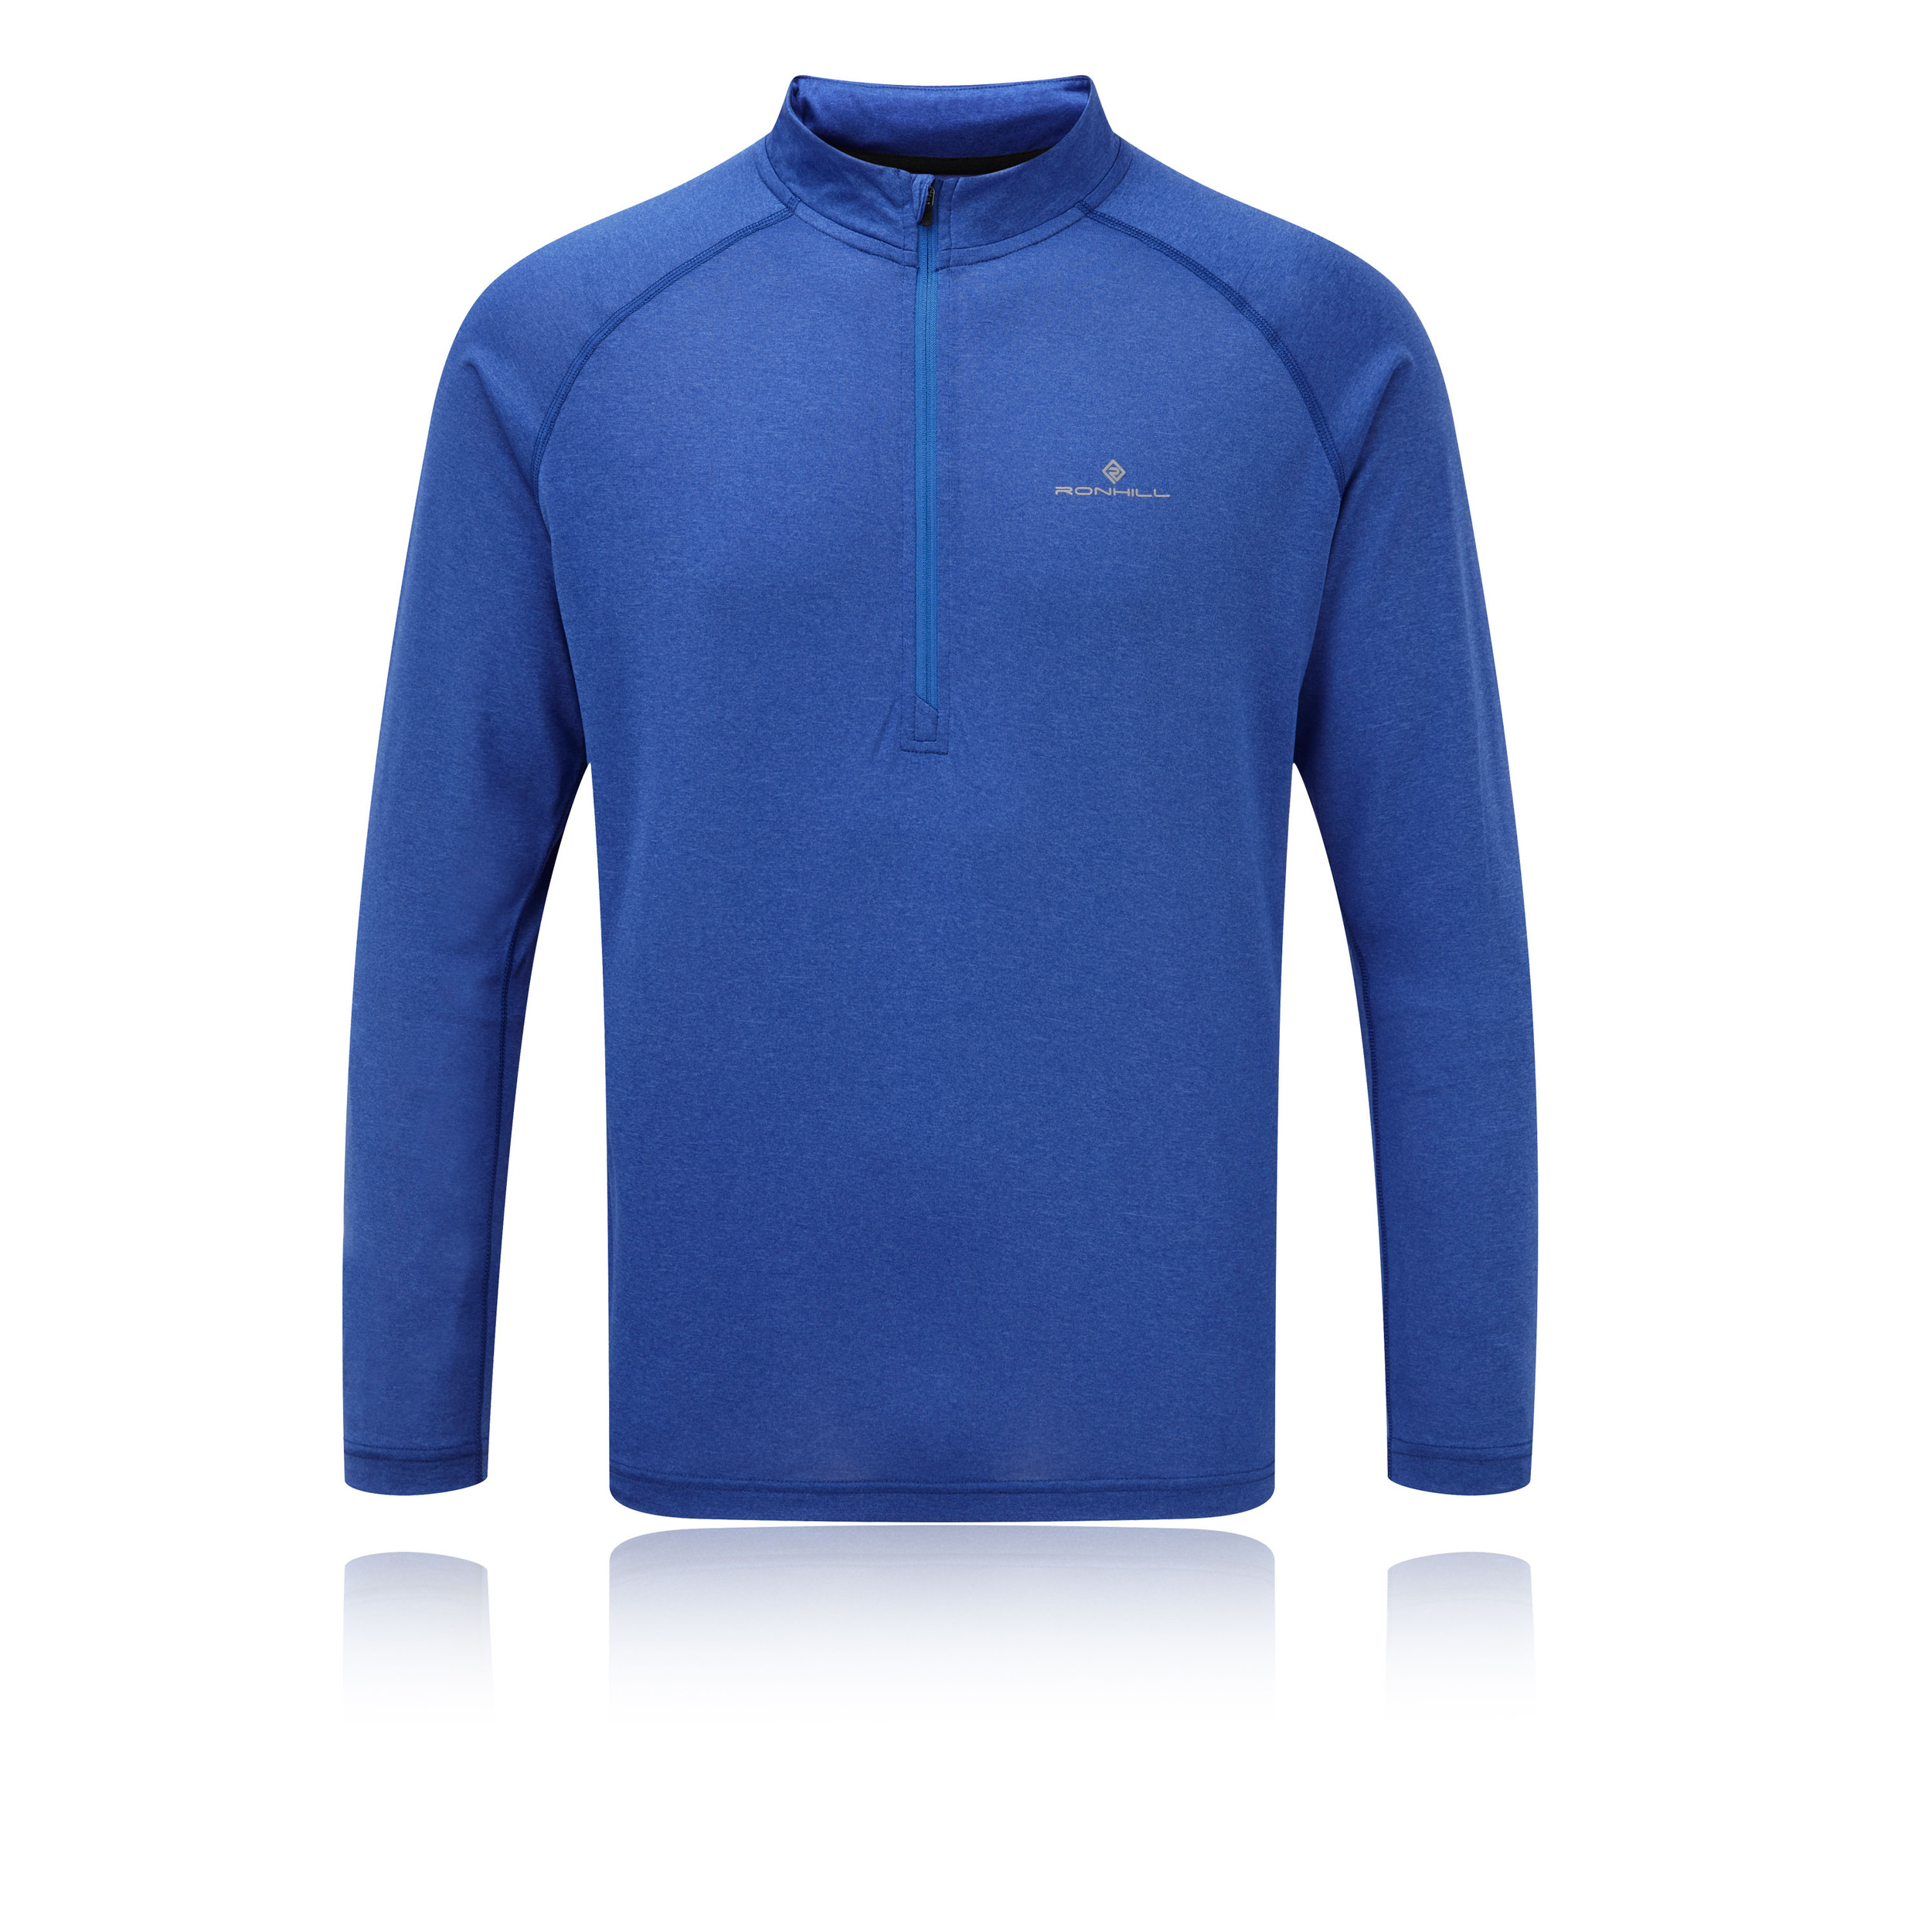 Men's Clothing Ronhill Everyday Half Zip Long Sleeve Mens Running Top Blue Clothing, Shoes & Accessories